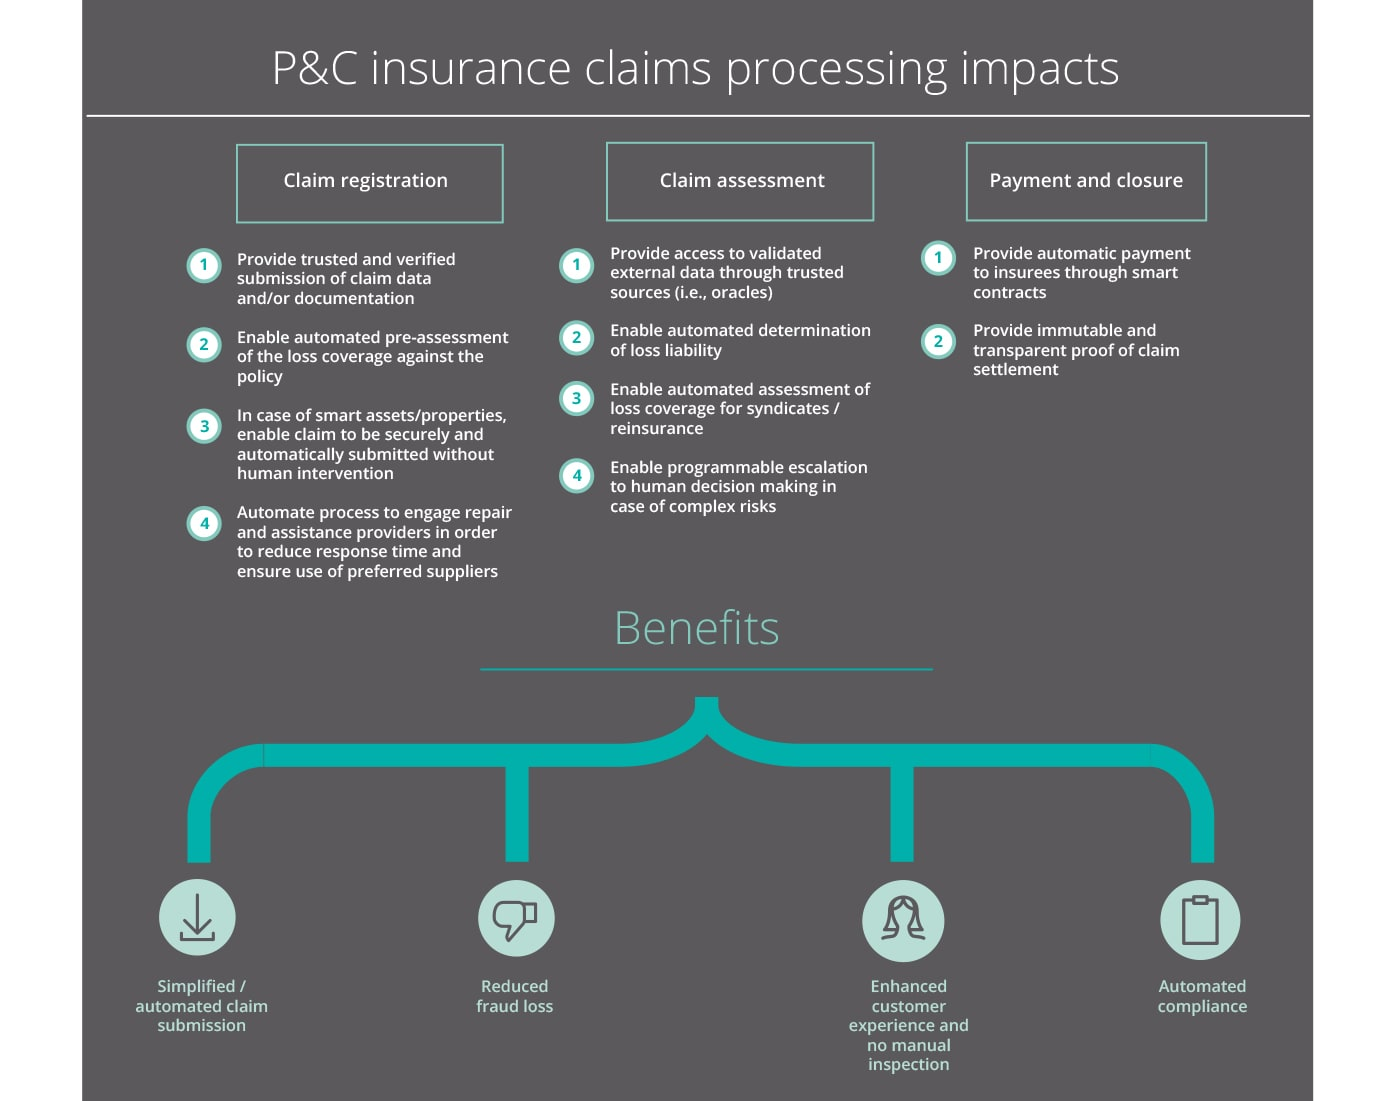 P&C insurance claims processing impacts Claim registration 1-Provide trusted and verified submission of claim data and/or documentation 2-Enable automated pre-assessment of the loss coverage against the policy 3-In case of smart assets/properties, enable claim to be securely and automatically submitted without human intervention 4-Automate process to engage repair and assistance providers in order to reduce response time and ensure use of preferred suppliers Claim assessment 1-Provide access to validated external data through trusted sources (i.e., oracles) 2-Enable automated determination of loss liability 3-Enable automated assessment of loss coverage for syndicates / reinsurance 4-Enable programmable escalation to human decision making in case of complex risks Payment and closure 1-Provide automatic payment to insurees through smart contracts 2-Provide immutable and transparent proof of claim settlement Benefits Simplified / automated claim submission Reduced fraud loss Enhanced customer experience and no manual inspection Automated compliance (i.e., real state registry, notary services, public records, etc.)